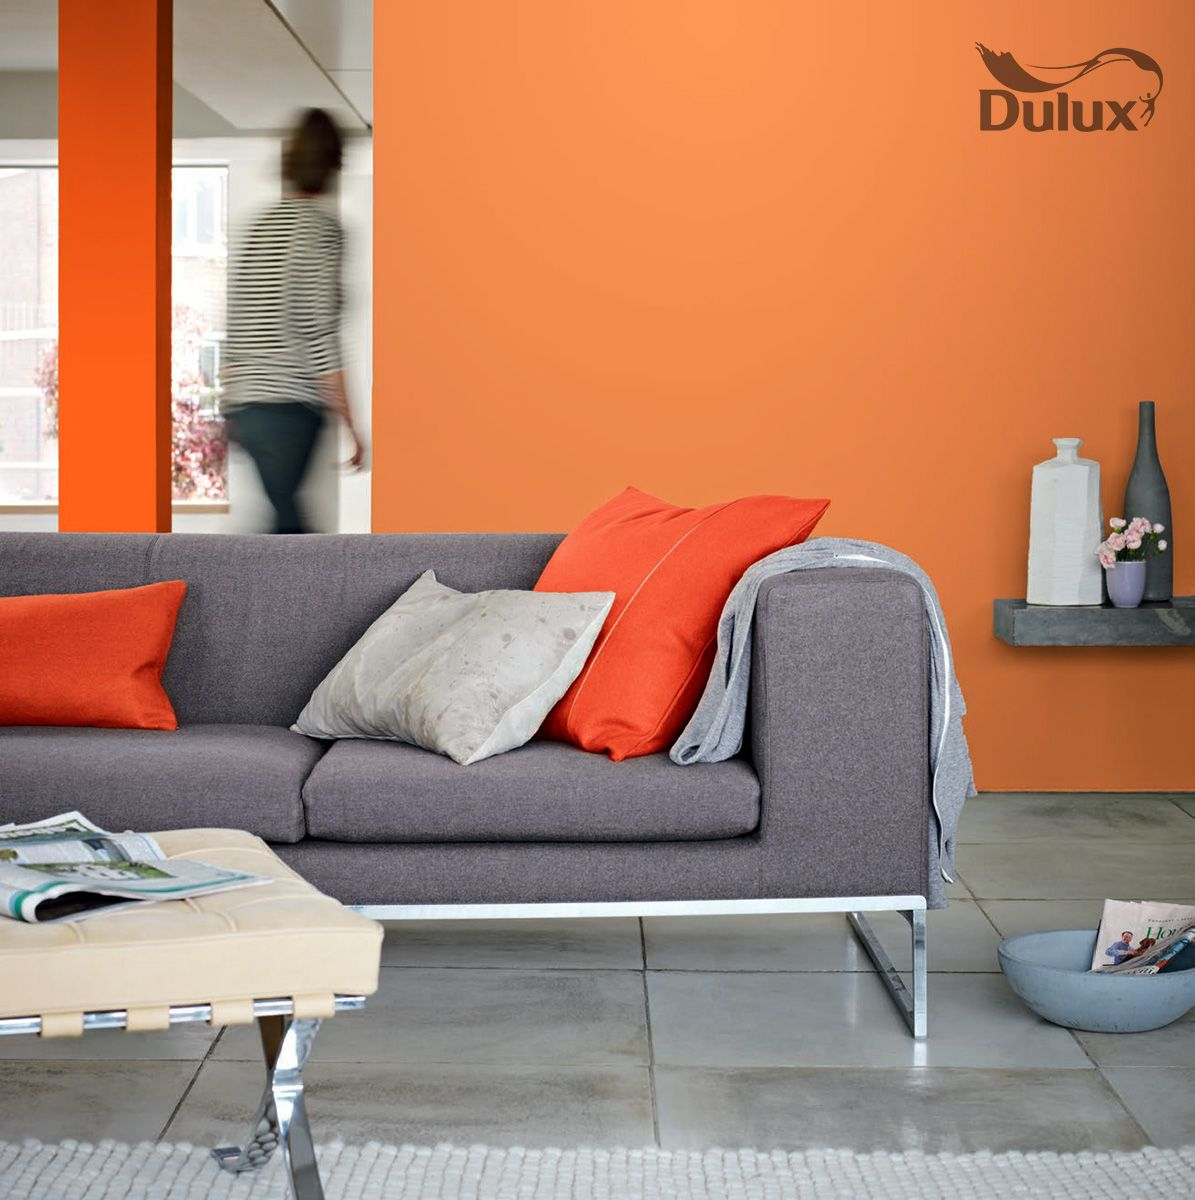 Dulux orange colour oranges pinterest paint ideas - Burnt orange feature wall living room ...